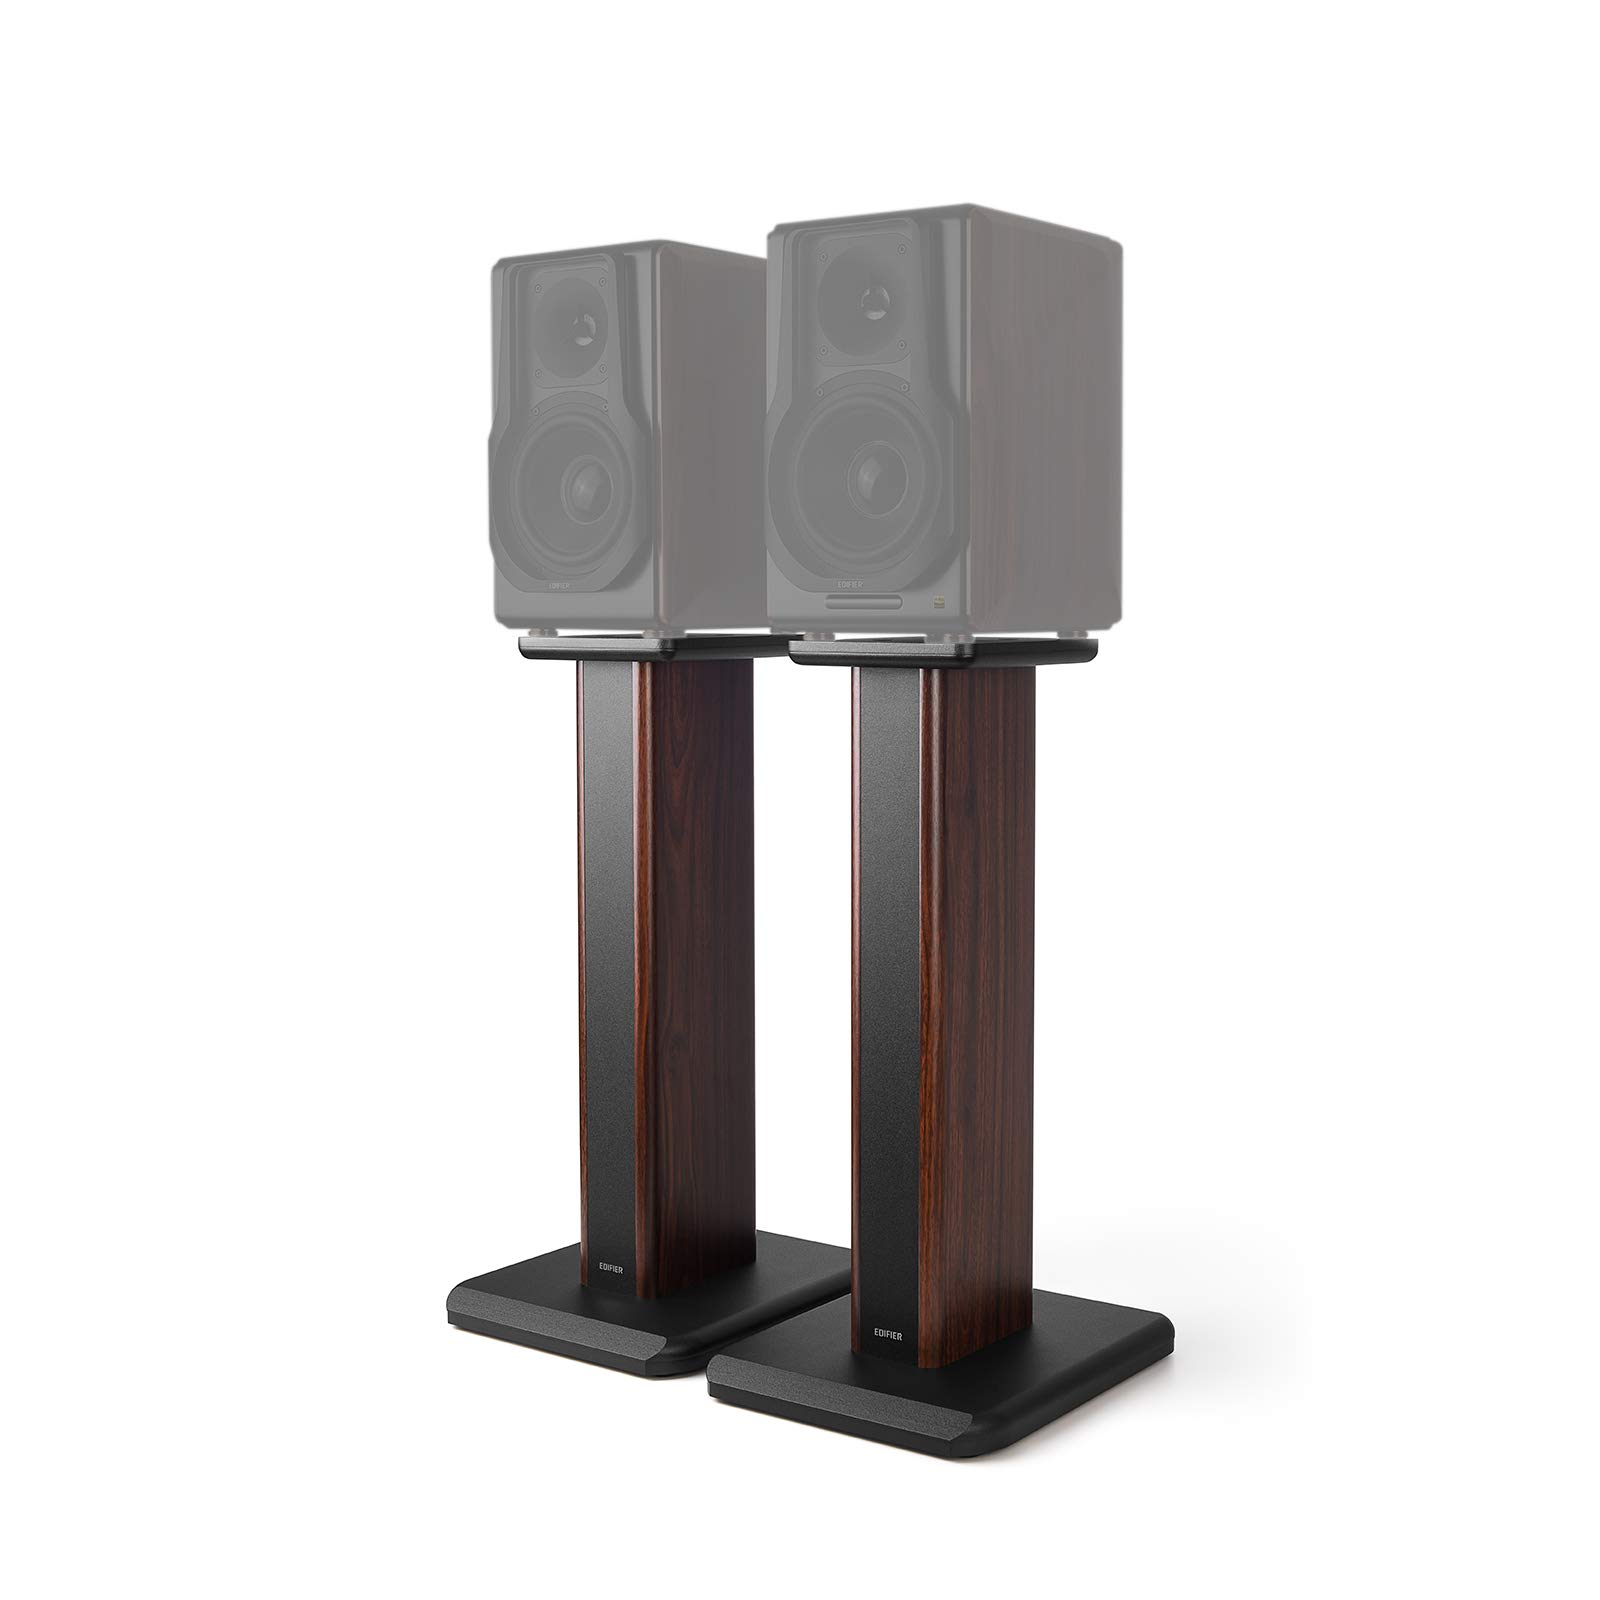 Edifier S3000PRO Stands - Wood Grain Easy Assembly Enhanced Listening by Edifier